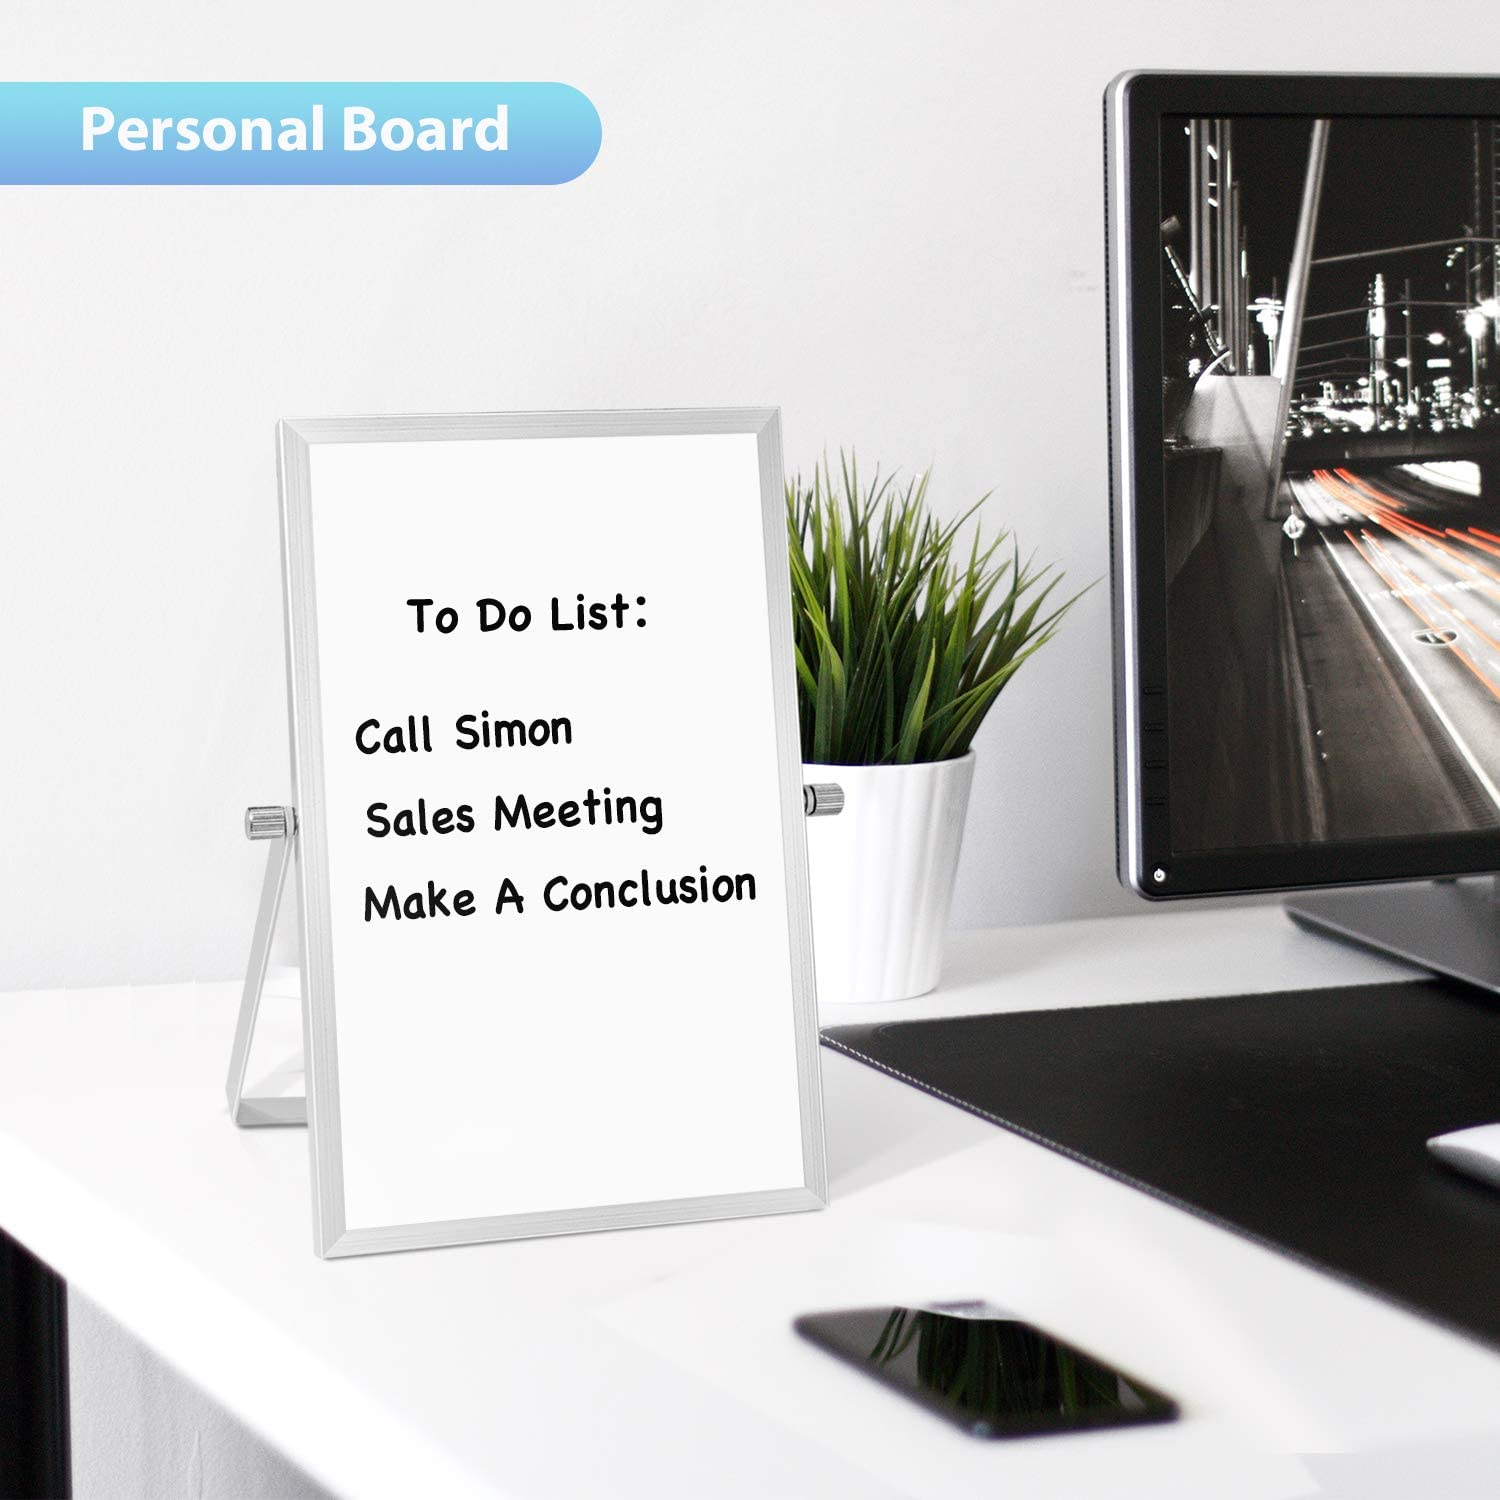 Small Dry Erase White Board Portable Mini Easel Board for Kids Drawing Cubicle Planning Memo Board ARCOBIS 12 x 16 Magnetic Hanging Double-Sided Whiteboard for Wall Kitchen Grocery List